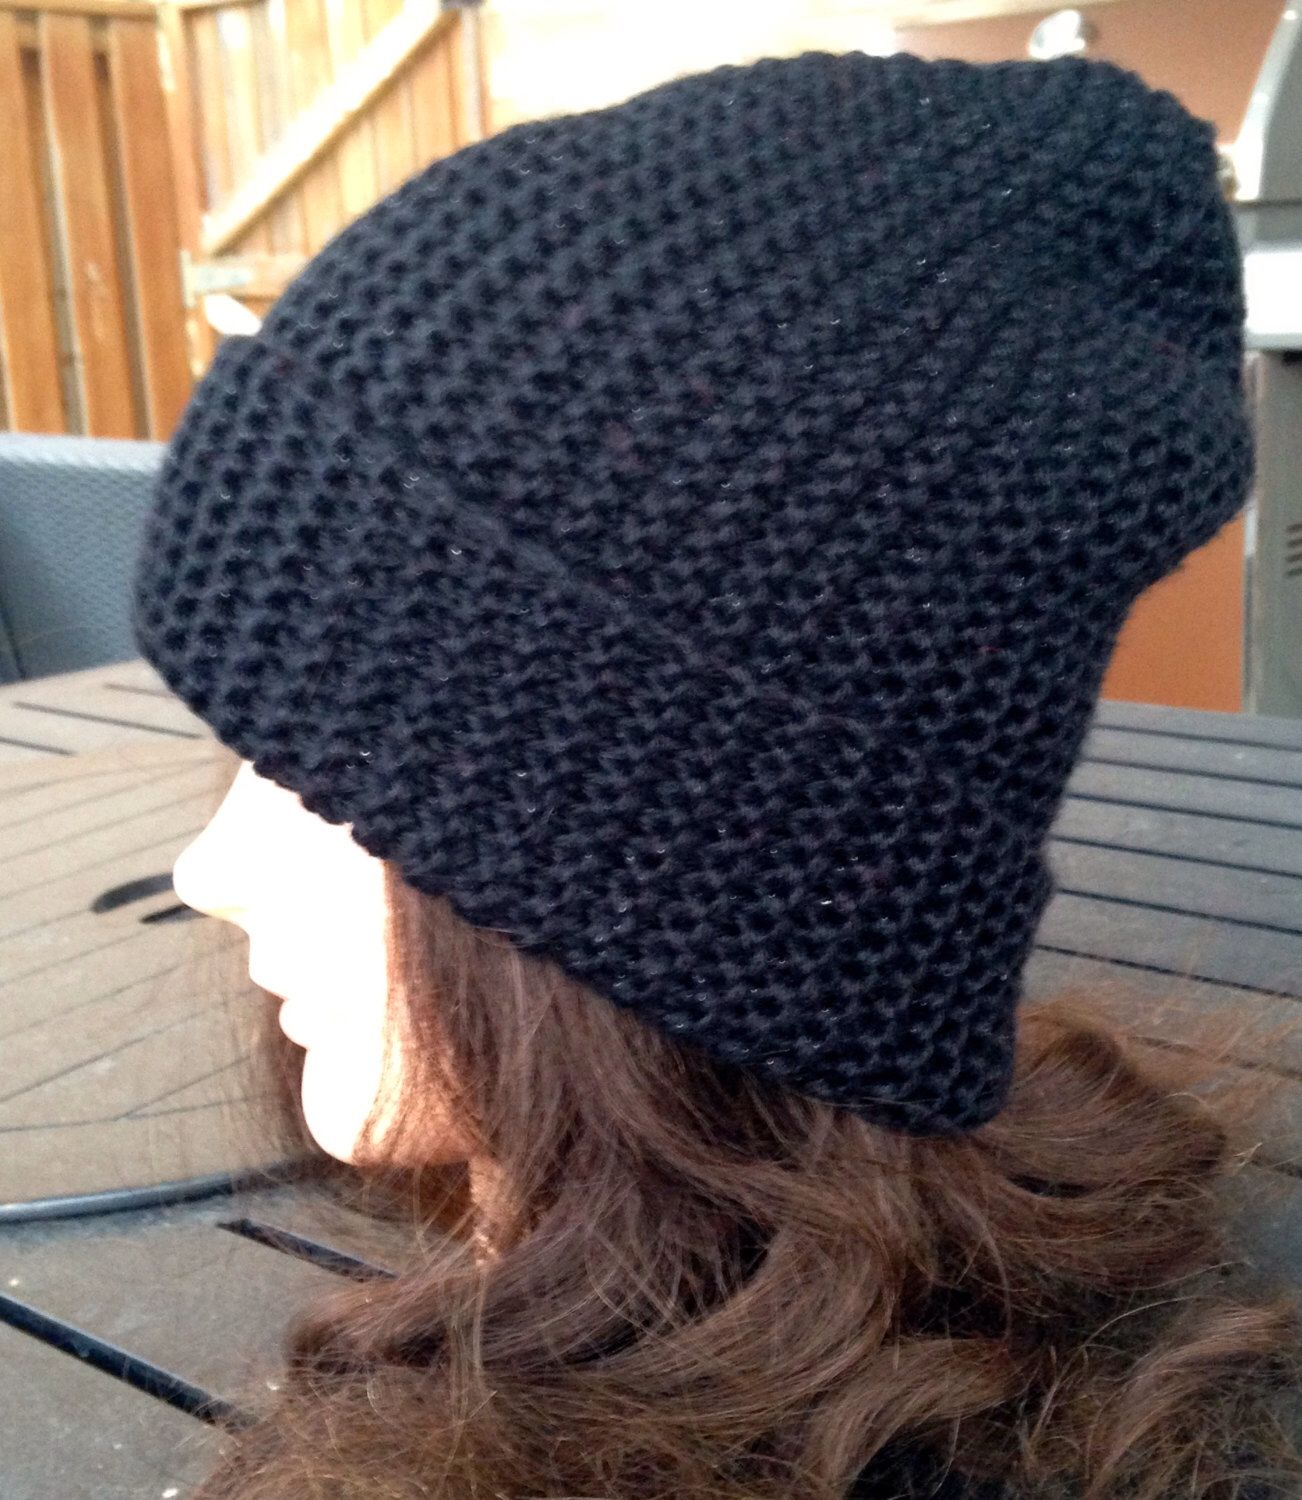 Hand Knit Slouchy Beanie Hat by bricoknits on Etsy https://www.etsy.com/listing/217522345/hand-knit-slouchy-beanie-hat